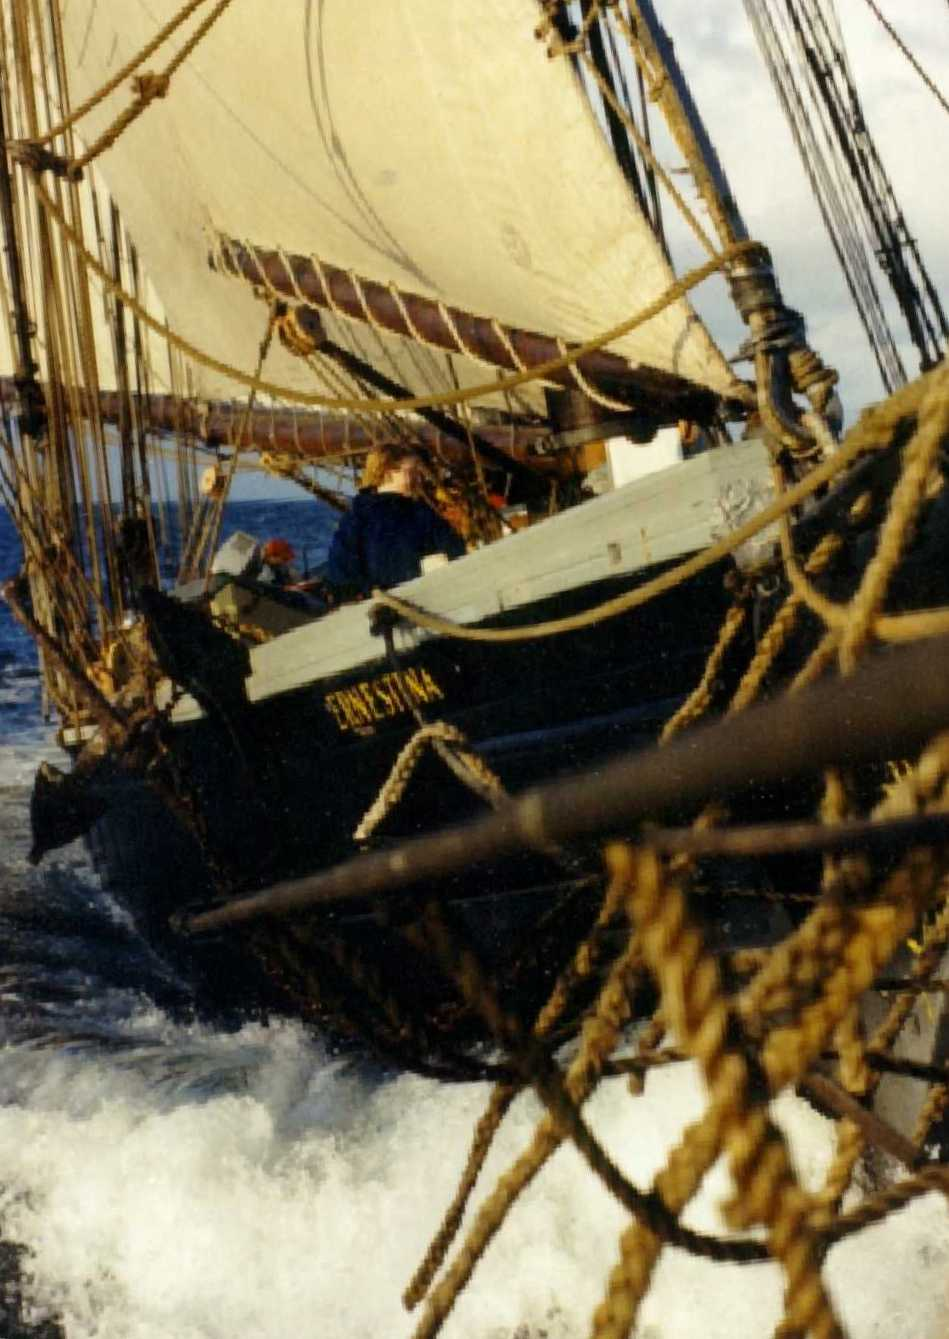 Ernestina-Morrissey: On the brink of a new chapter in her life of sailing.